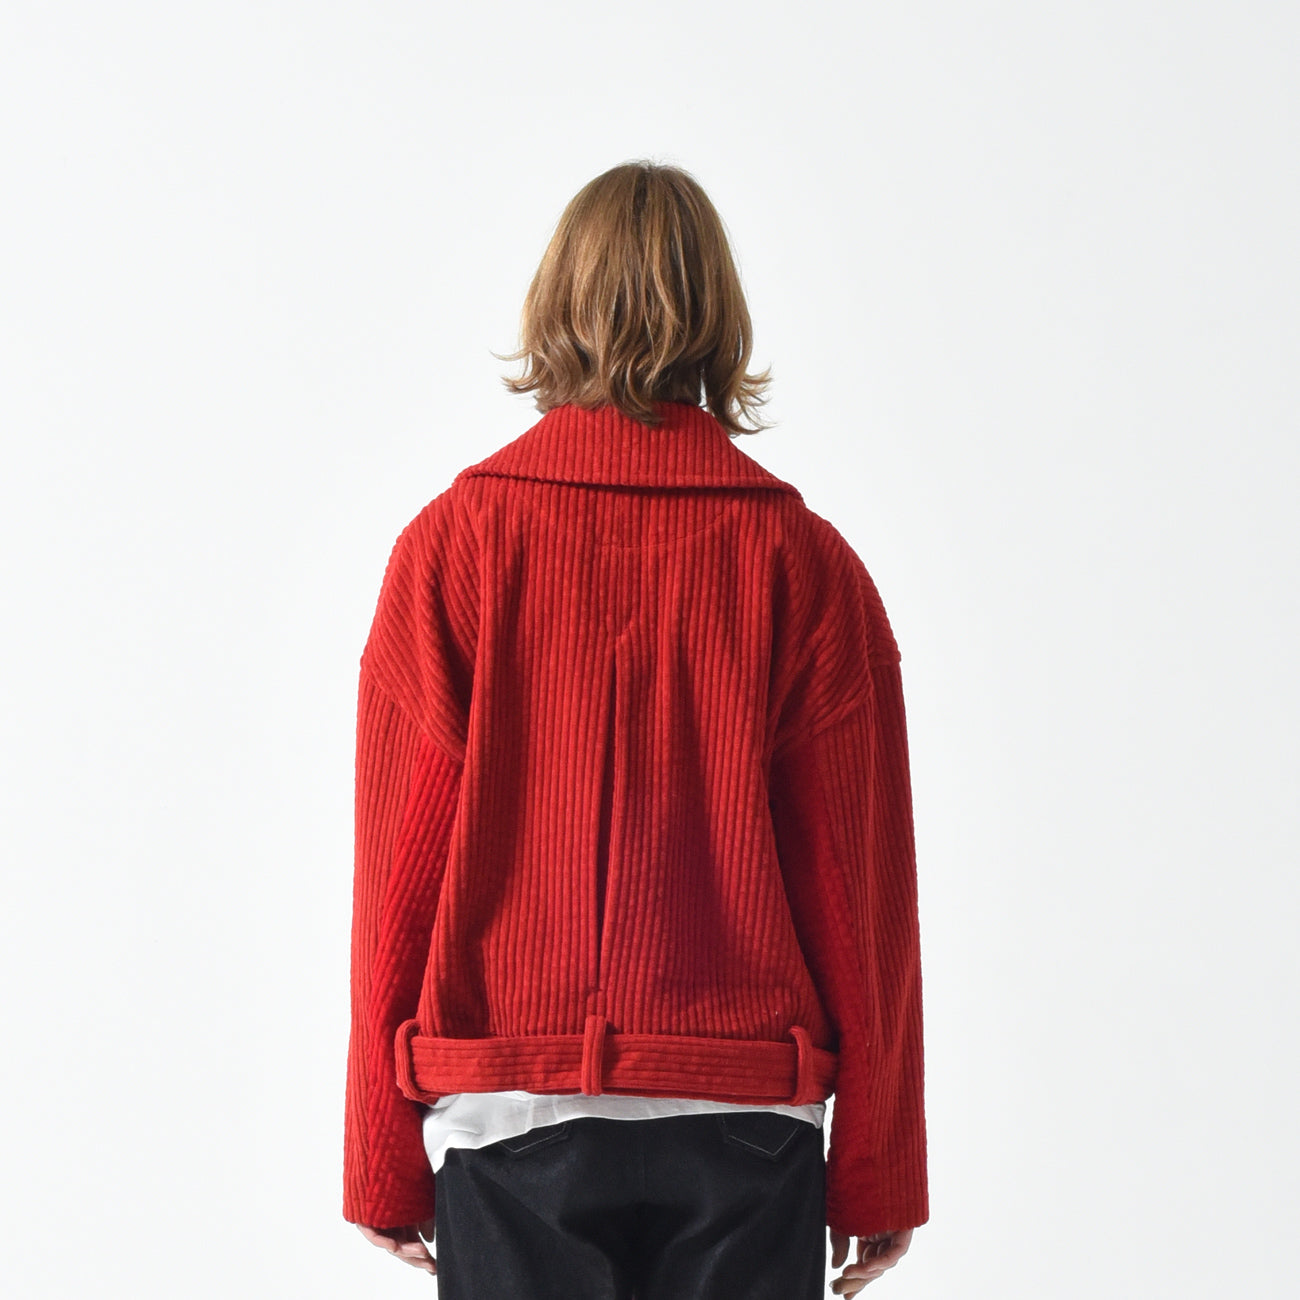 🔖 Jumbo Corduroy Belted Jacket - Red 50% OFF